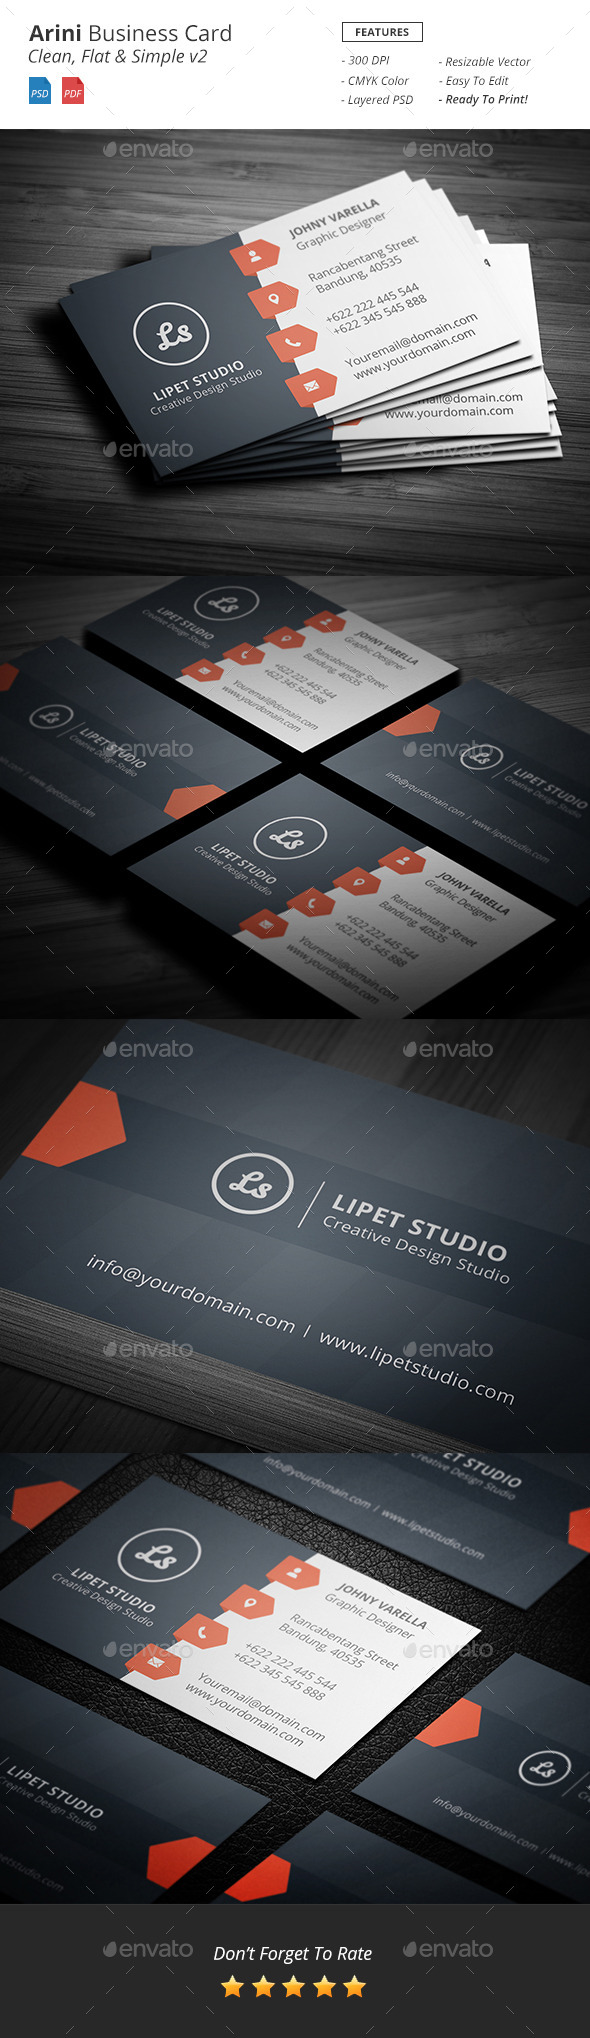 Arini - Clean Business Card Template v2 - Corporate Business Cards